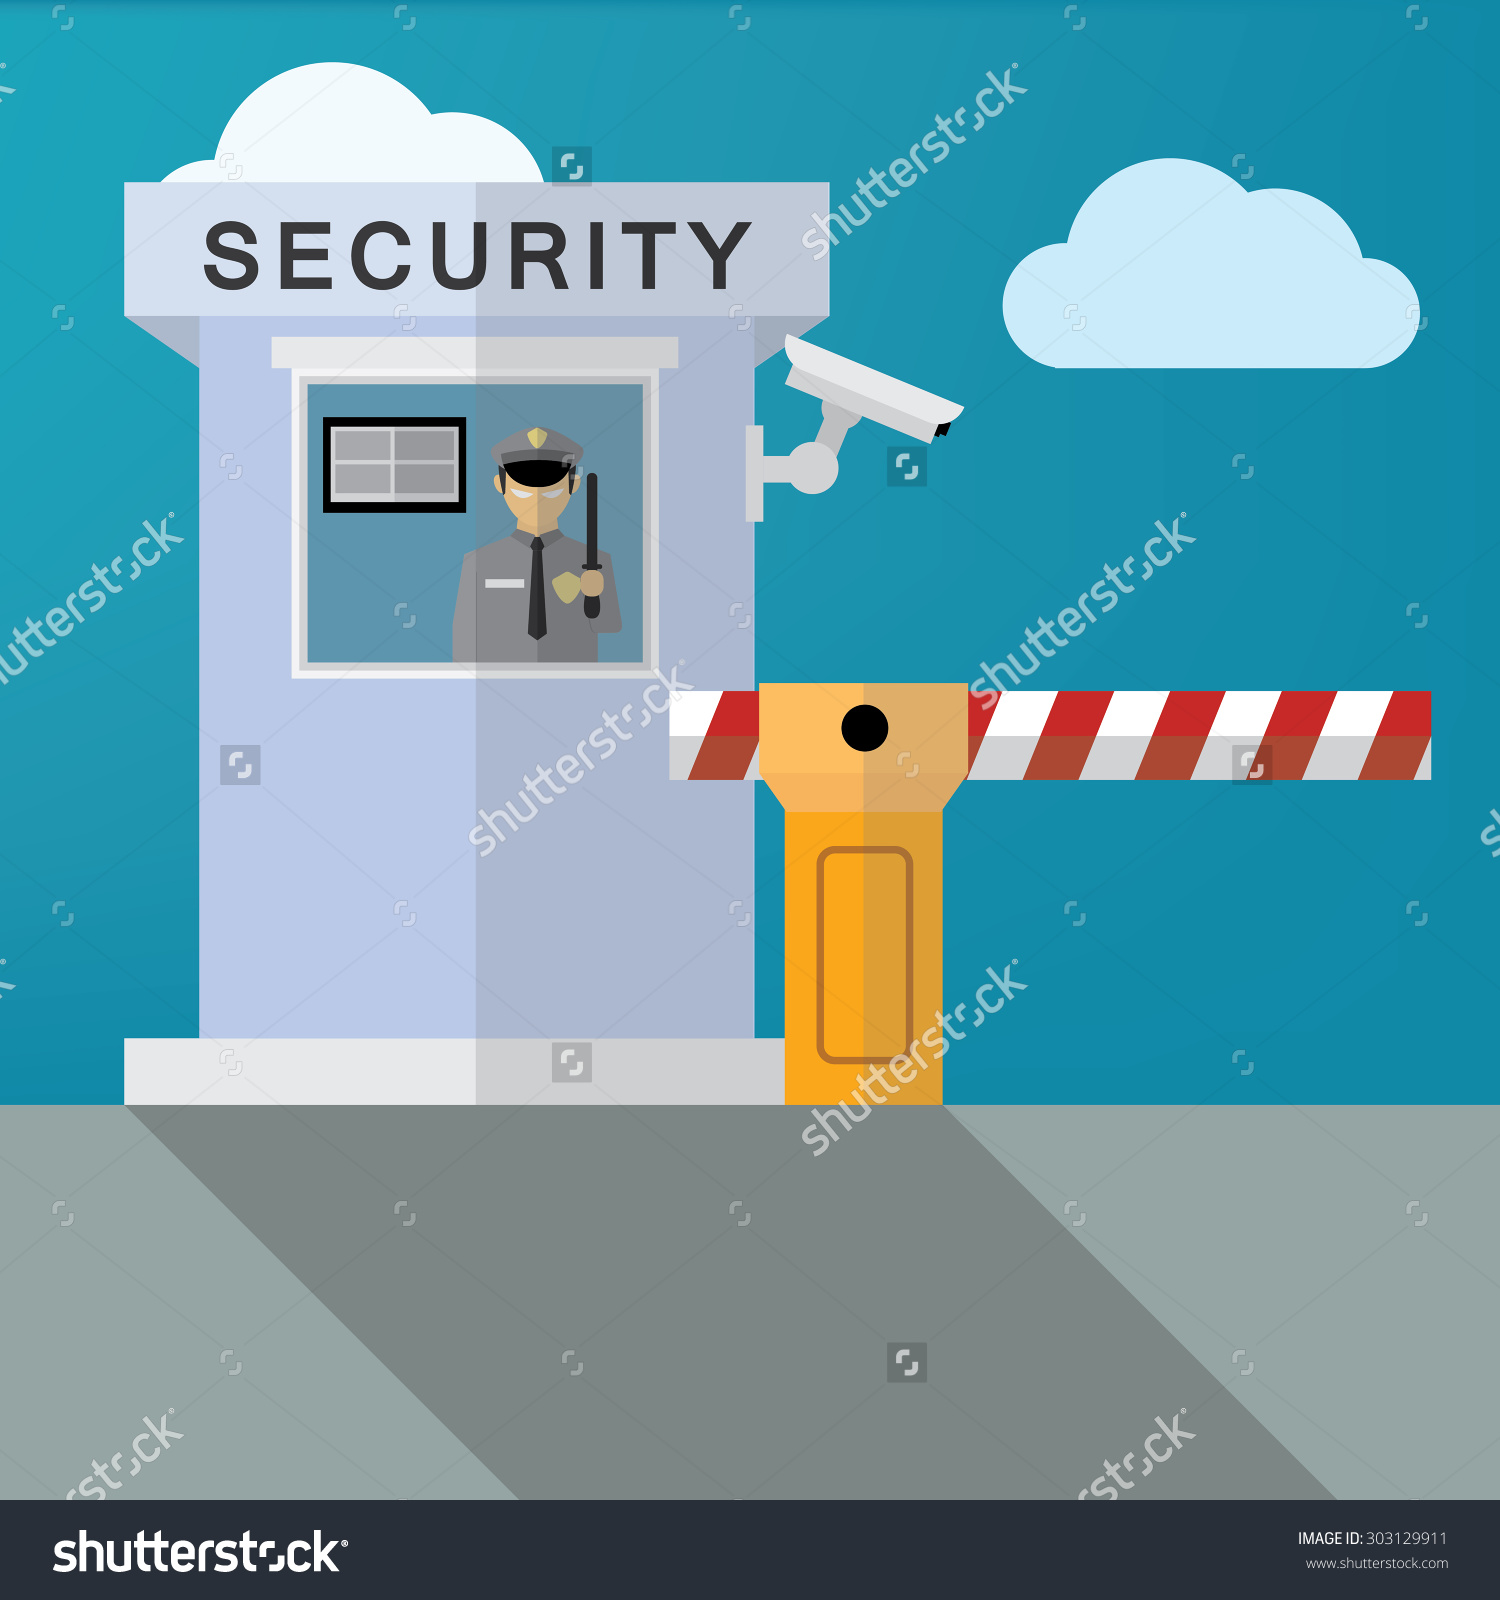 Security gate clipart.